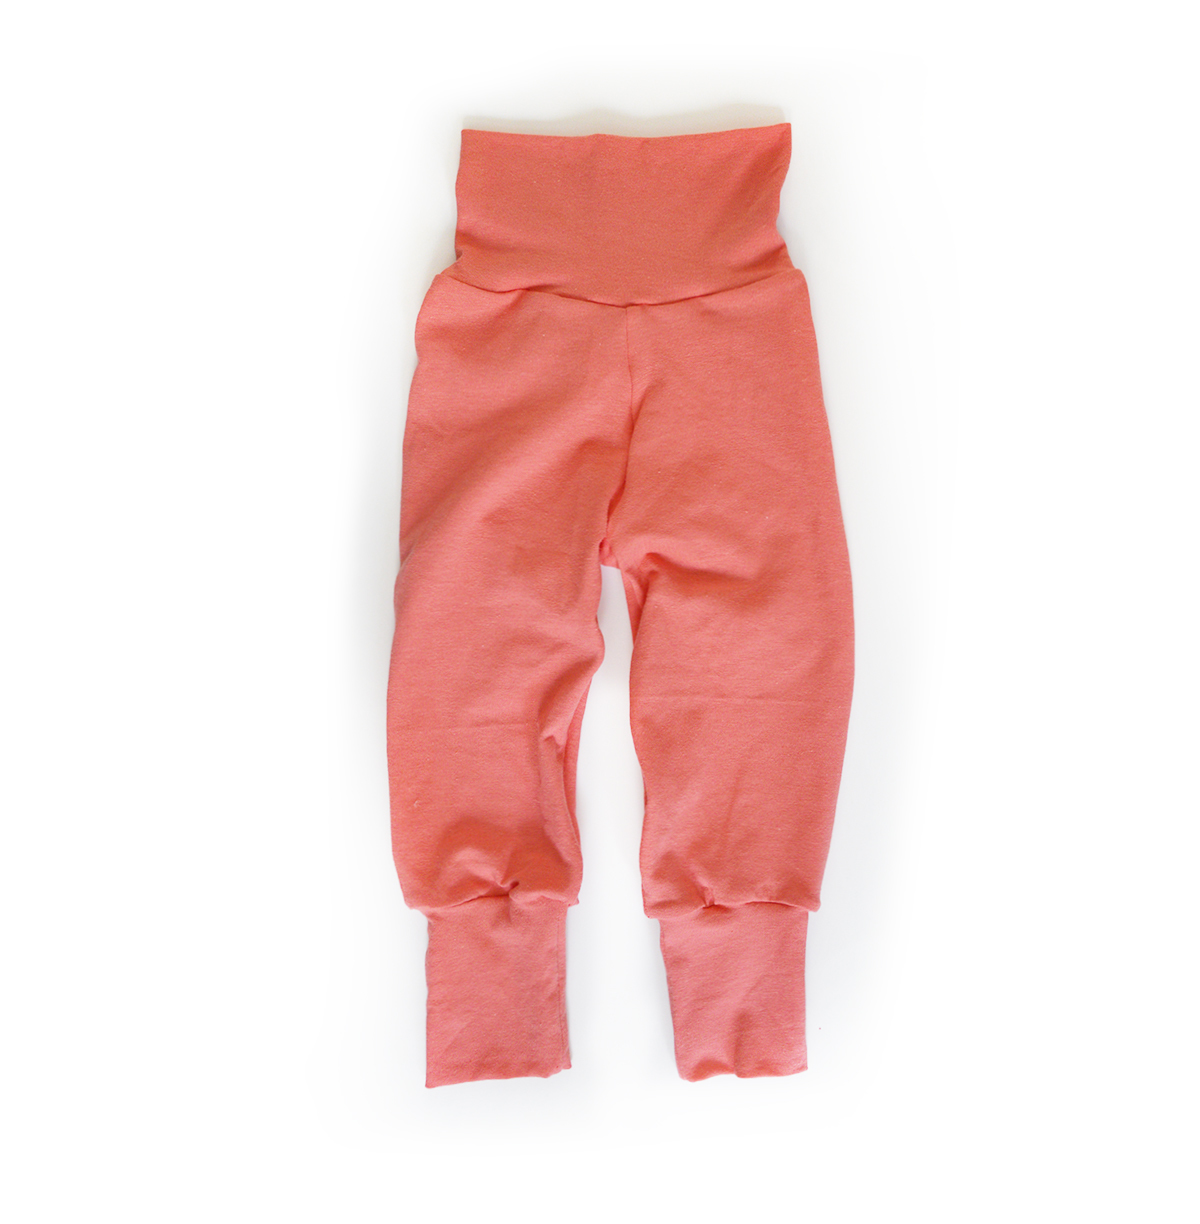 Little Sprout Pants™ Coral - Cotton 00481